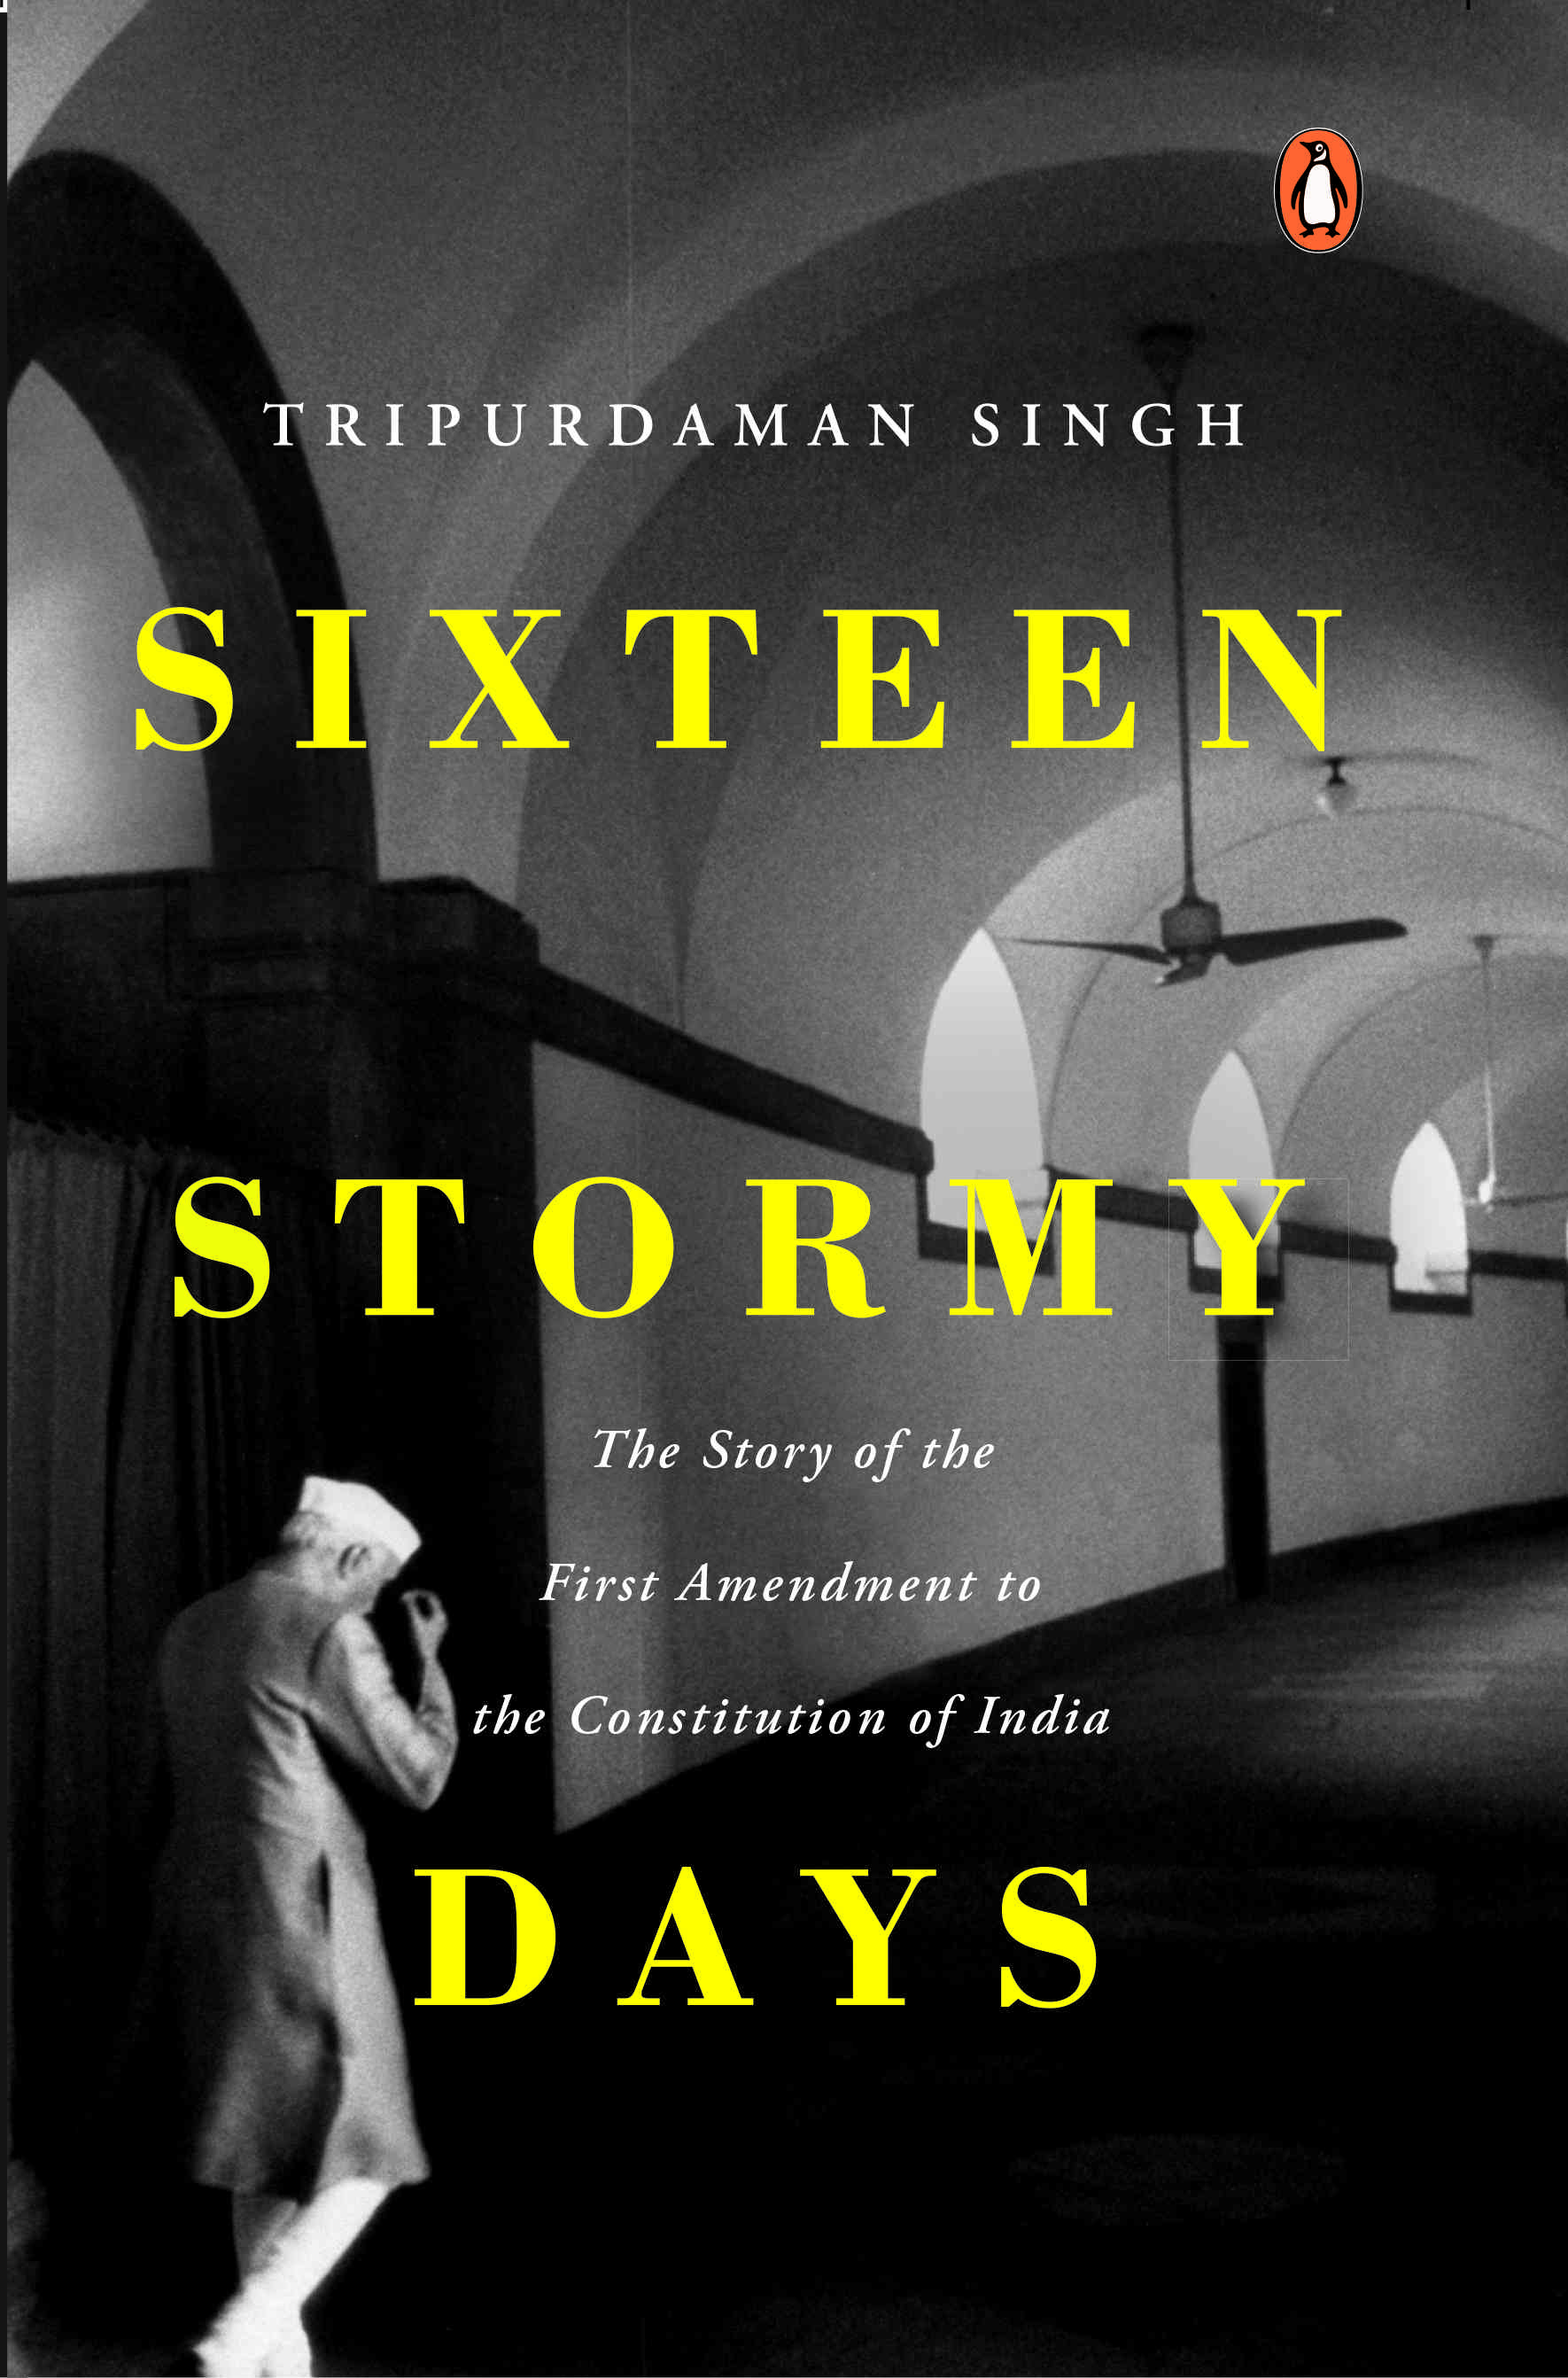 Sixteen Stormy Days: The Story of the First Amendment to the Constitution of India by Tripurdaman Singh, Vintage, Rs 599